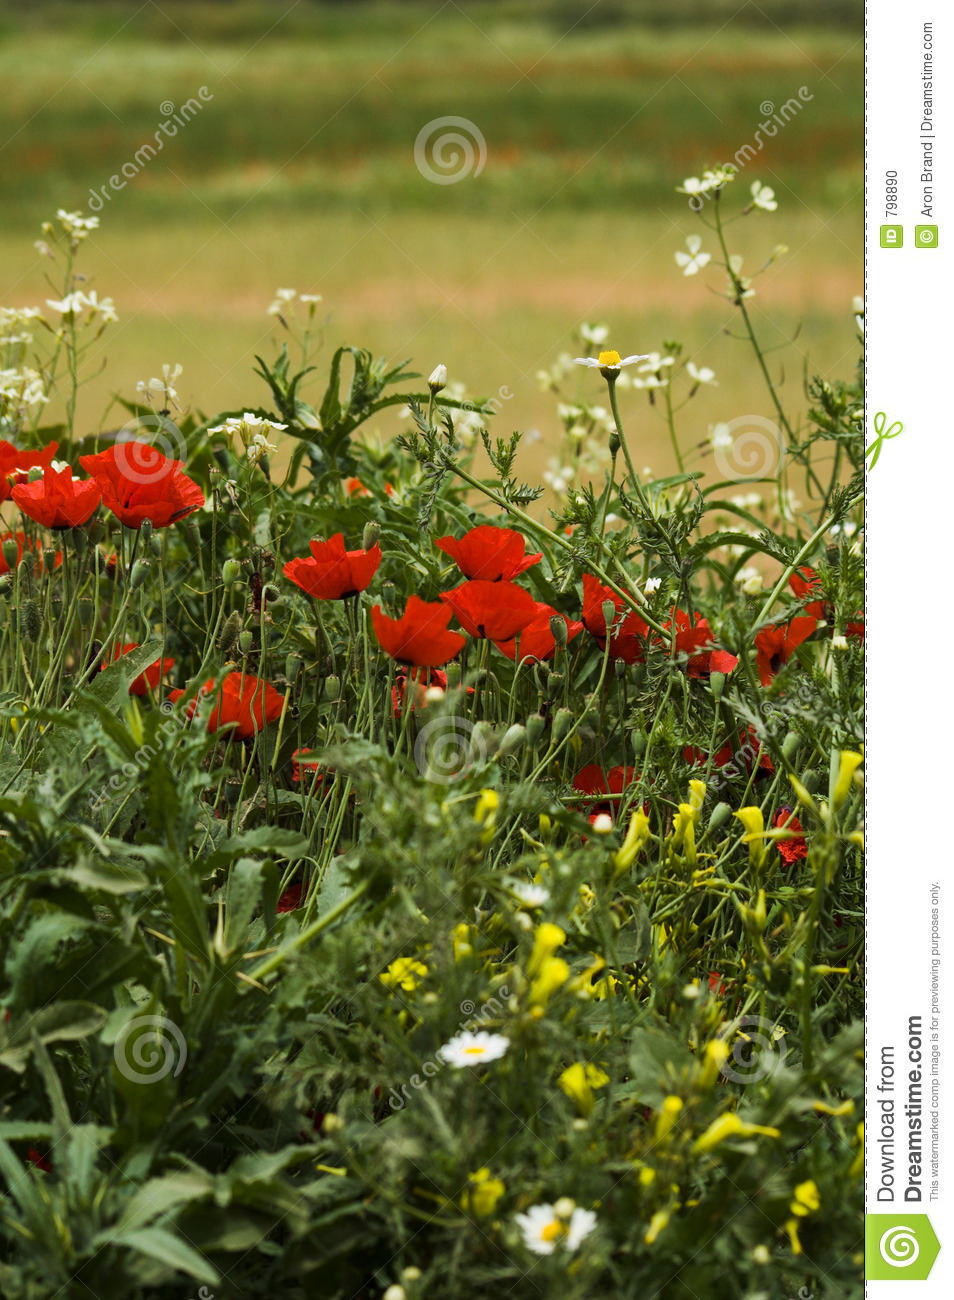 A field of spring flowers (shallow depth of field)